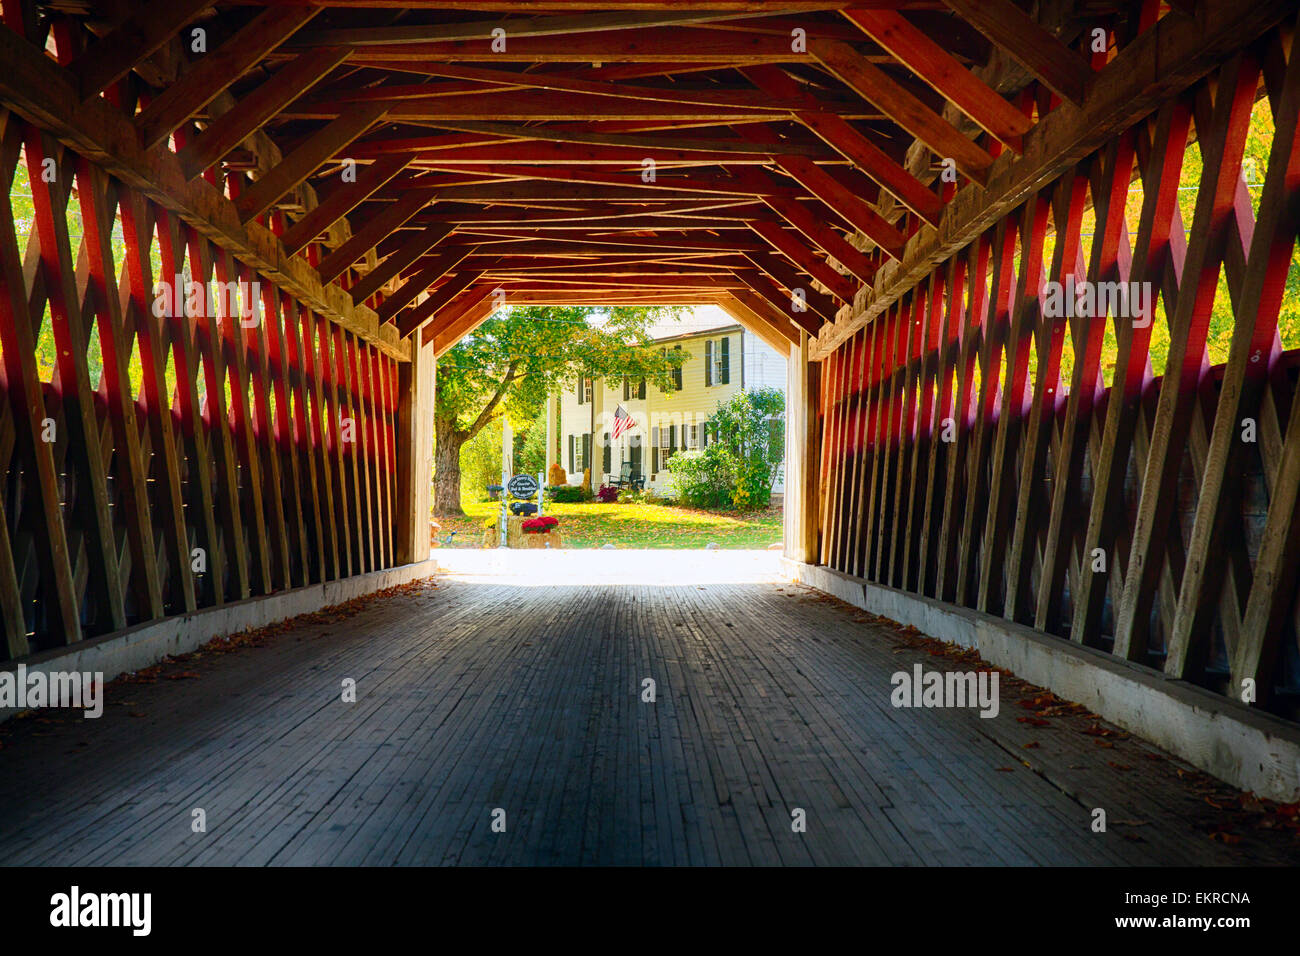 View Through a Covered Bridge, Henry Bridge, Bennington, Vermont - Stock Image